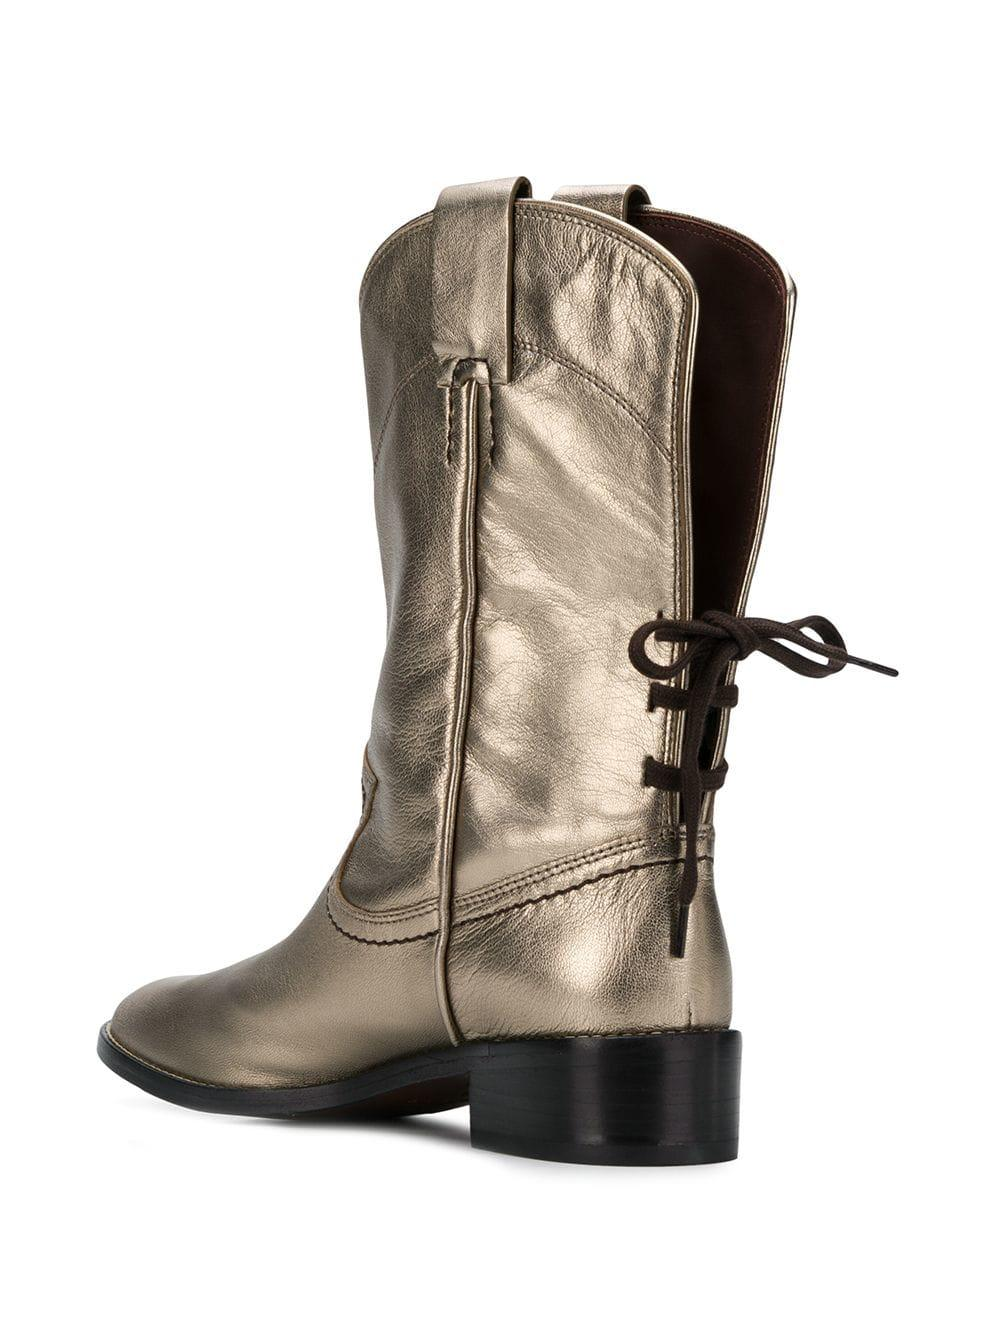 Boots Calf By Lyst Chloé Cowboy Metallic See In Mid Inspired xZqqB7w6